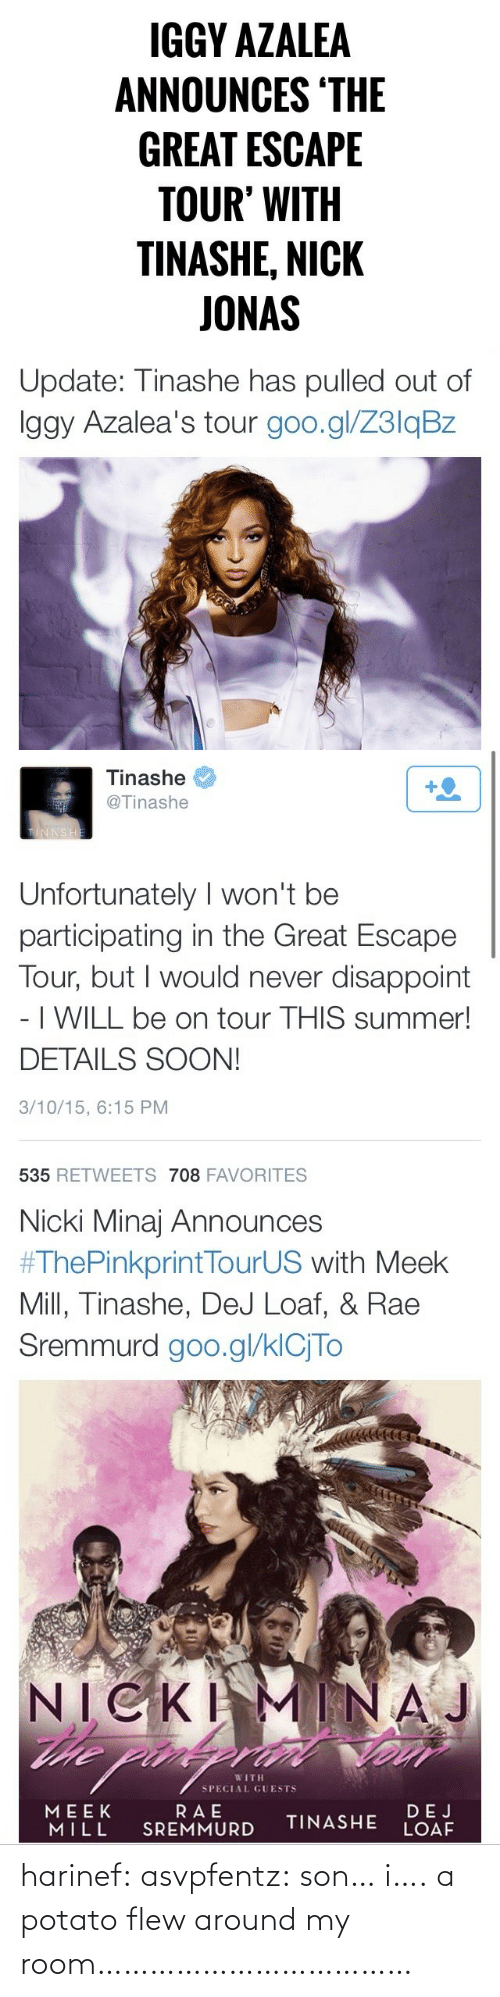 Participating: IGGY AZALEA  ANNOUNCES 'THE  GREAT ESCAPE  TOUR' WITH  TINASHE, NICK  JONAS   Update: Tinashe has pulled out of  Iggy Azalea's tour goo.gl/Z3lqBz   Tinashe  +2  @Tinashe  TINNSHE  Unfortunately I won't be  participating in the Great Escape  Tour, but I would never disappoint  - I WILL be on tour THIS summer!  DETAILS SOON!  3/10/15, 6:15 PM  535 RETWEETS 708 FAVORITES   Nicki Minaj Announces  #ThePinkprintTourUS with Meek  Mill, Tinashe, DeJ Loaf, & Rae  Sremmurd goo.gl/klCjTo  NICKI  he pin  MINAJ  WITH  SPECIAL GUESTS  RAE  SREMMURD  MEEK  MILL  DEJ  LOAF  TINASHE harinef:  asvpfentz:  son… i….  a potato flew around my room………………………………